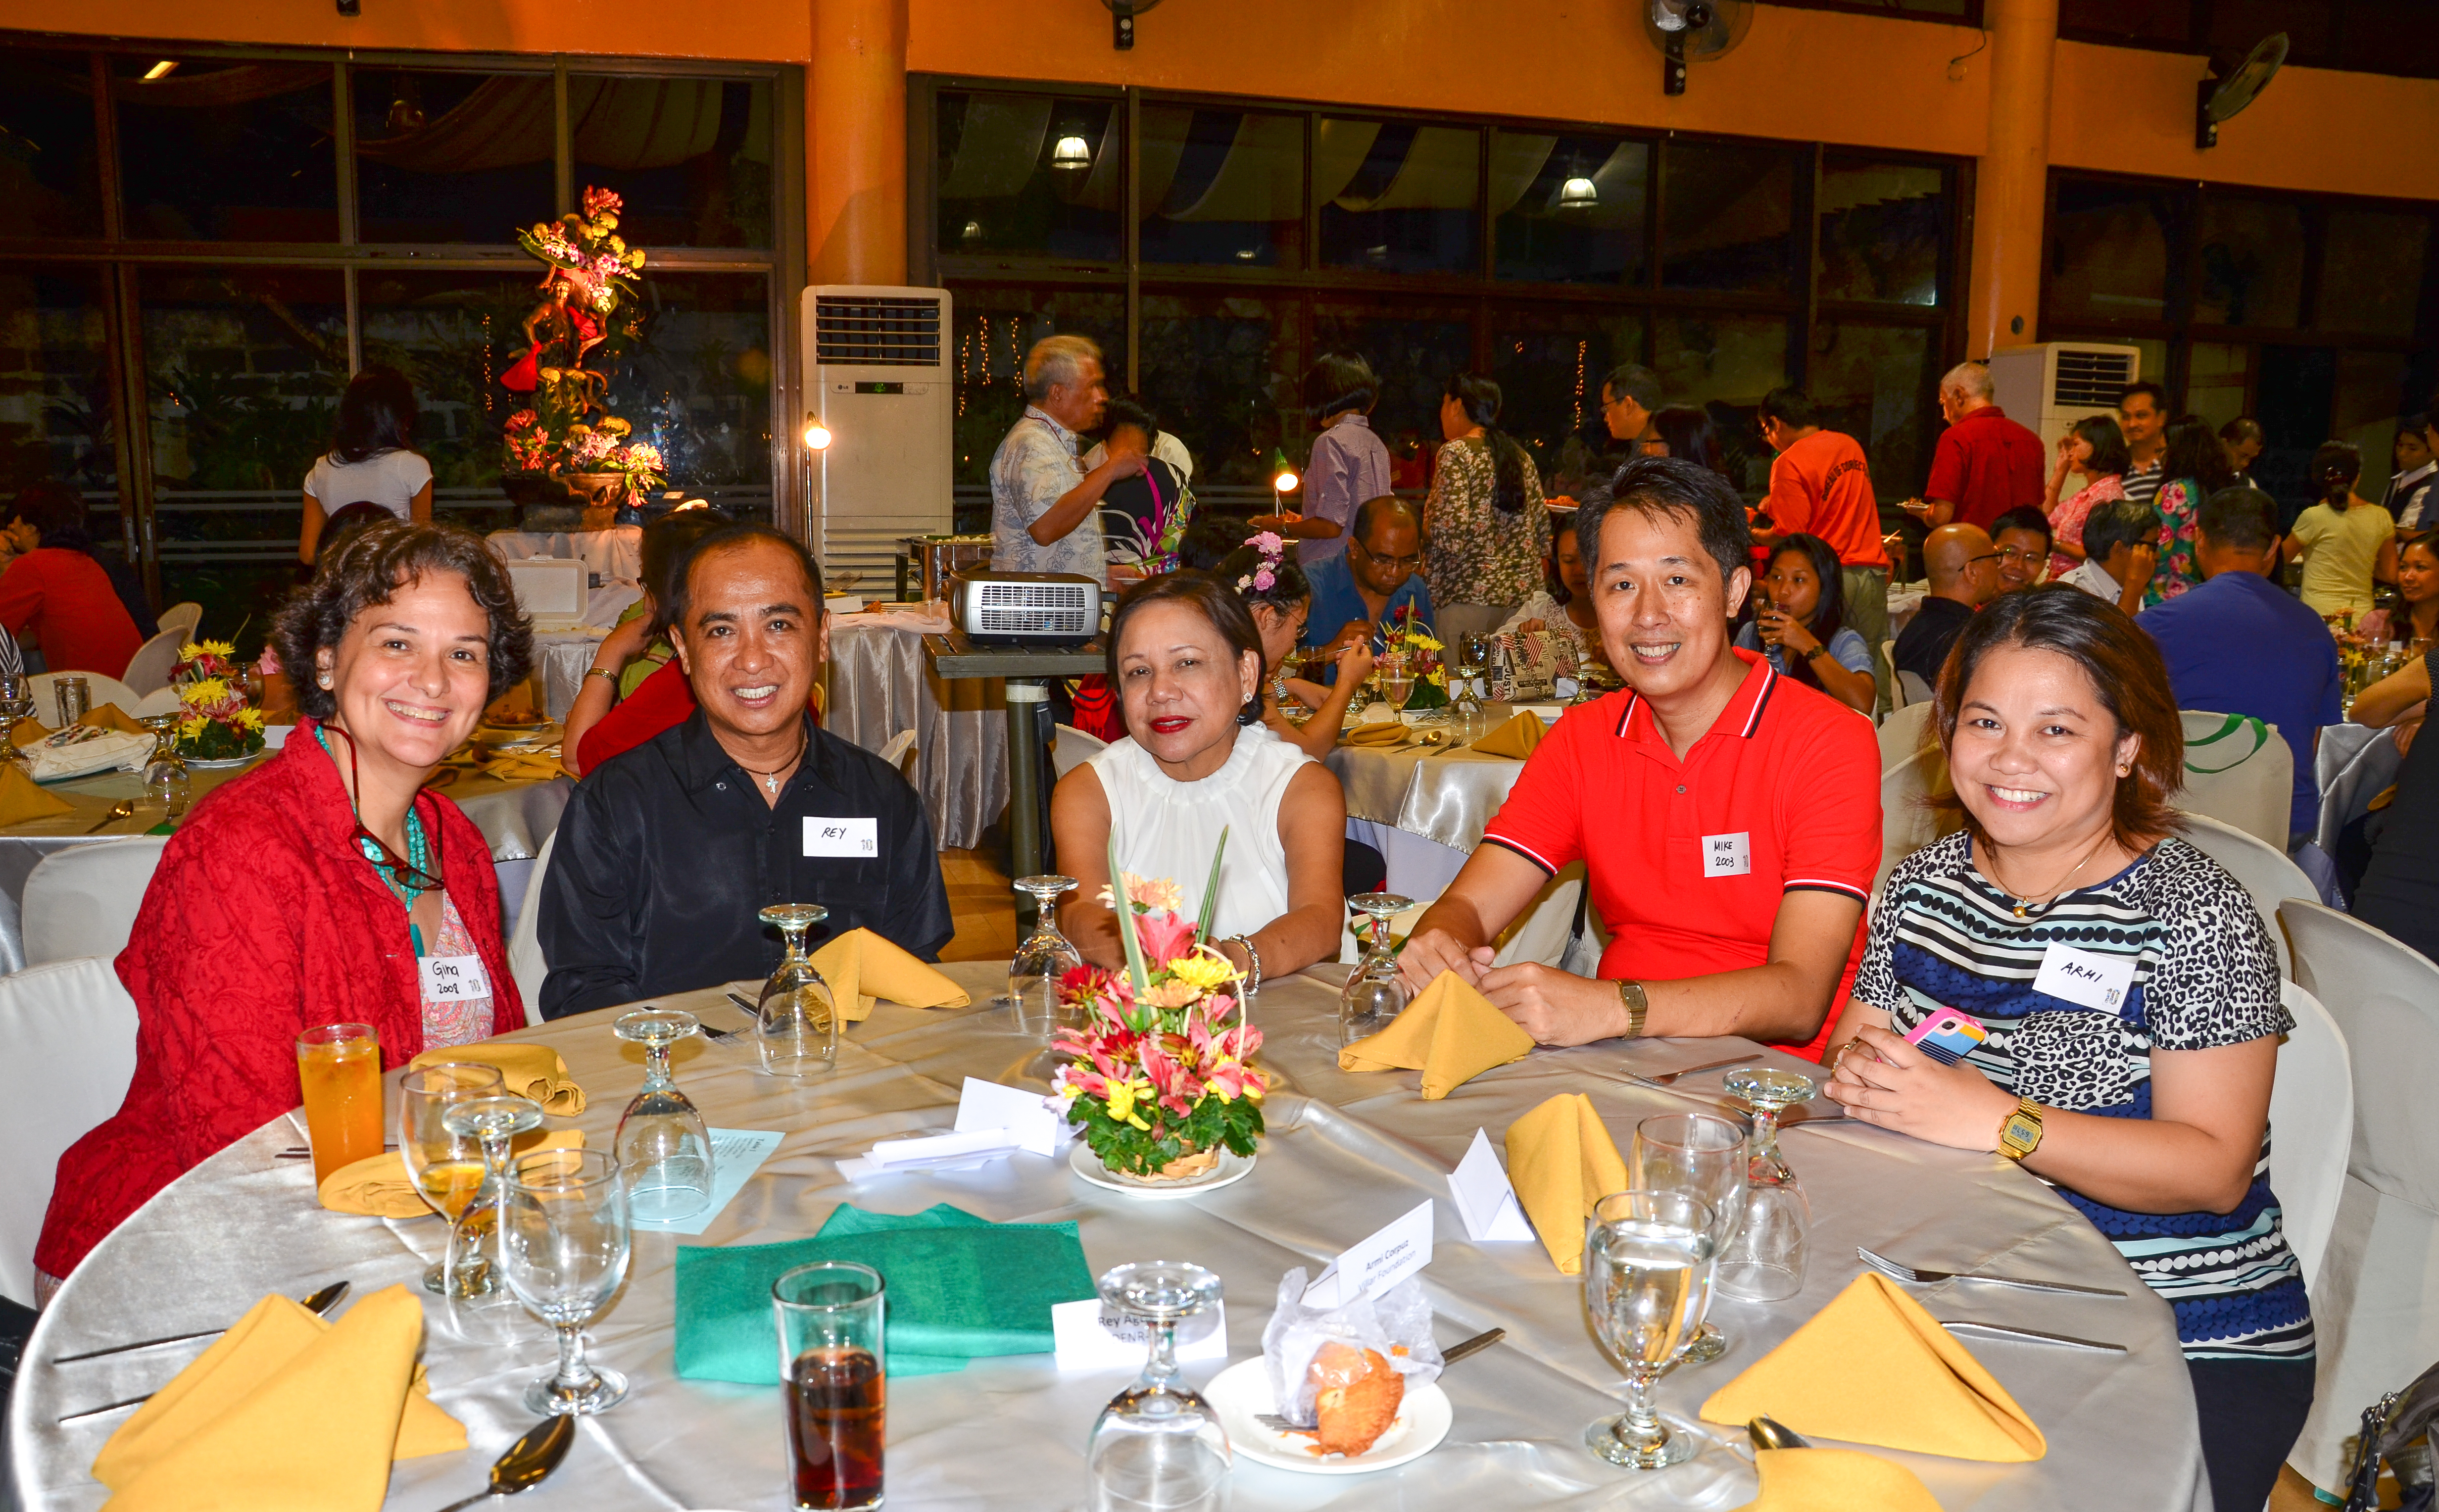 With the newly-elected officers, President Gina Mapua and Treasurer Mike Lu, among the guests who came to grace the event were Rey Aguinaldo of LPPCHEA, Senator Cynthia Villar and Atty. Armi Corpuz of the Villar Foundation. Photo by Marites Falcon.